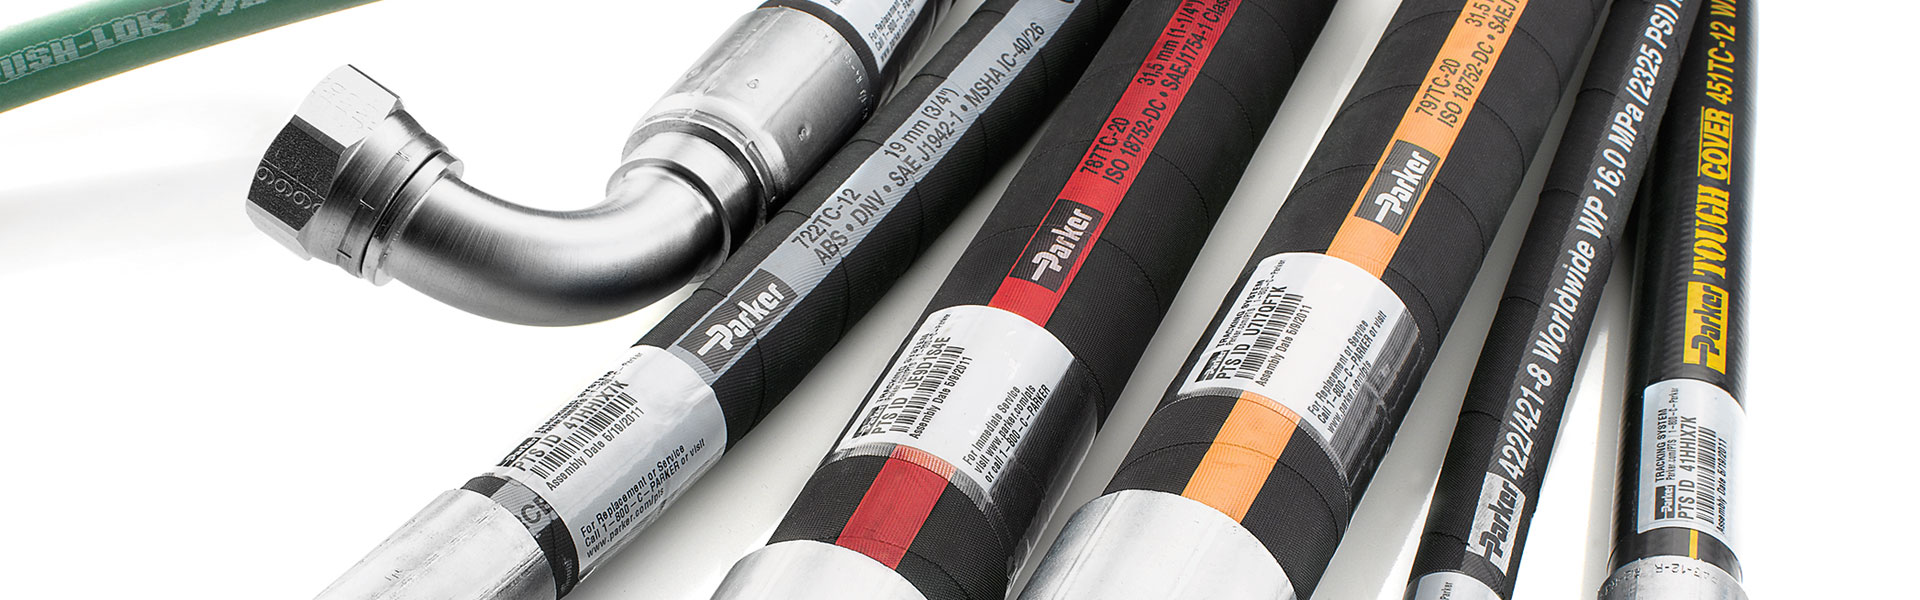 Hydraulic Hose Repair, Industrial Hose & Rubber Product Sales